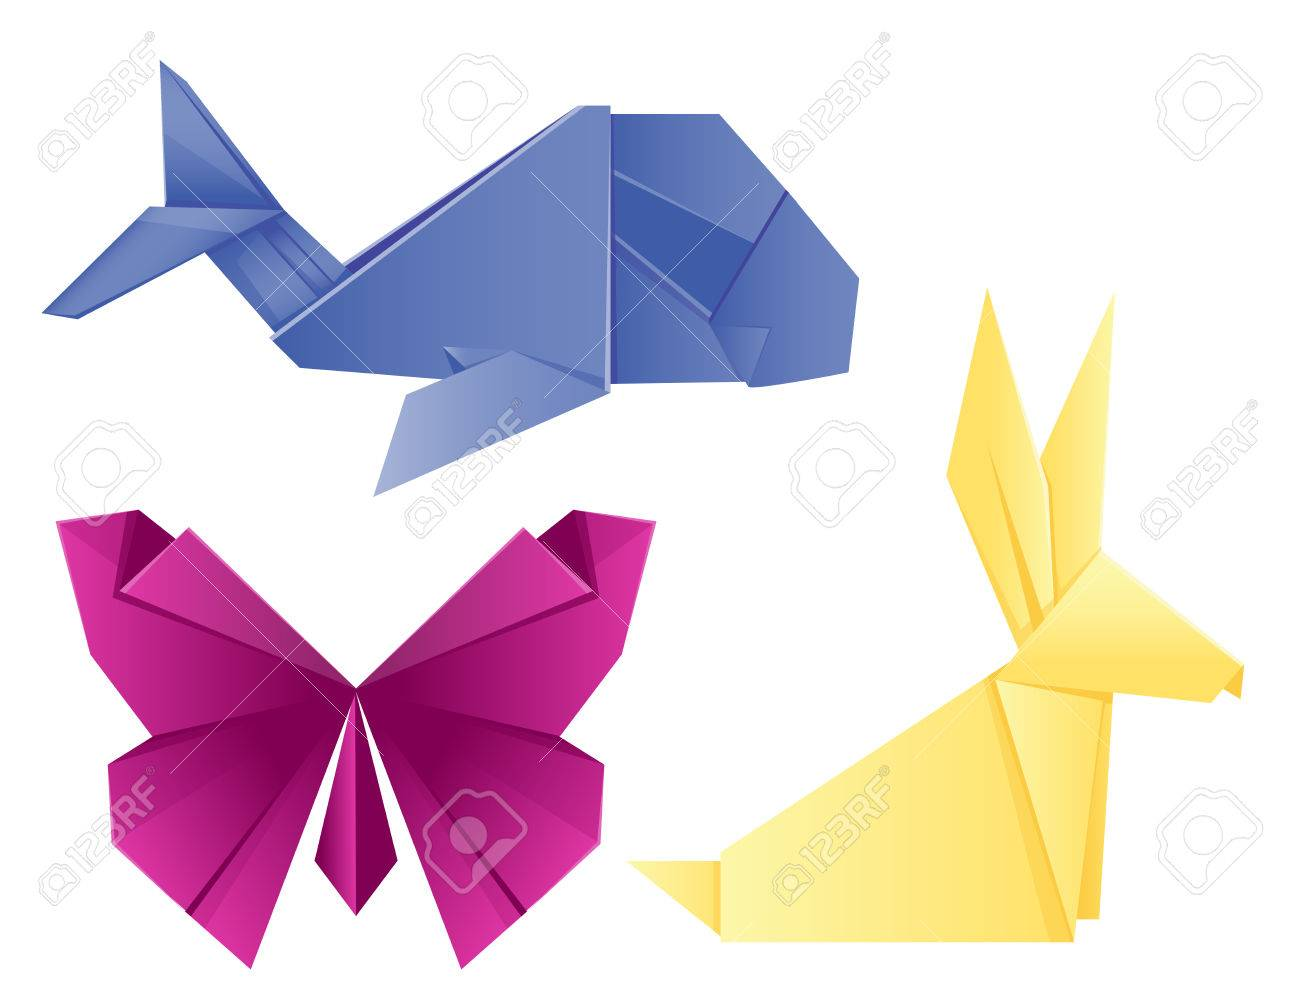 Animals Origami Set Japanese Folded Modern Wildlife Hobby Symbol Creative Decoration Vector Illustration Stock